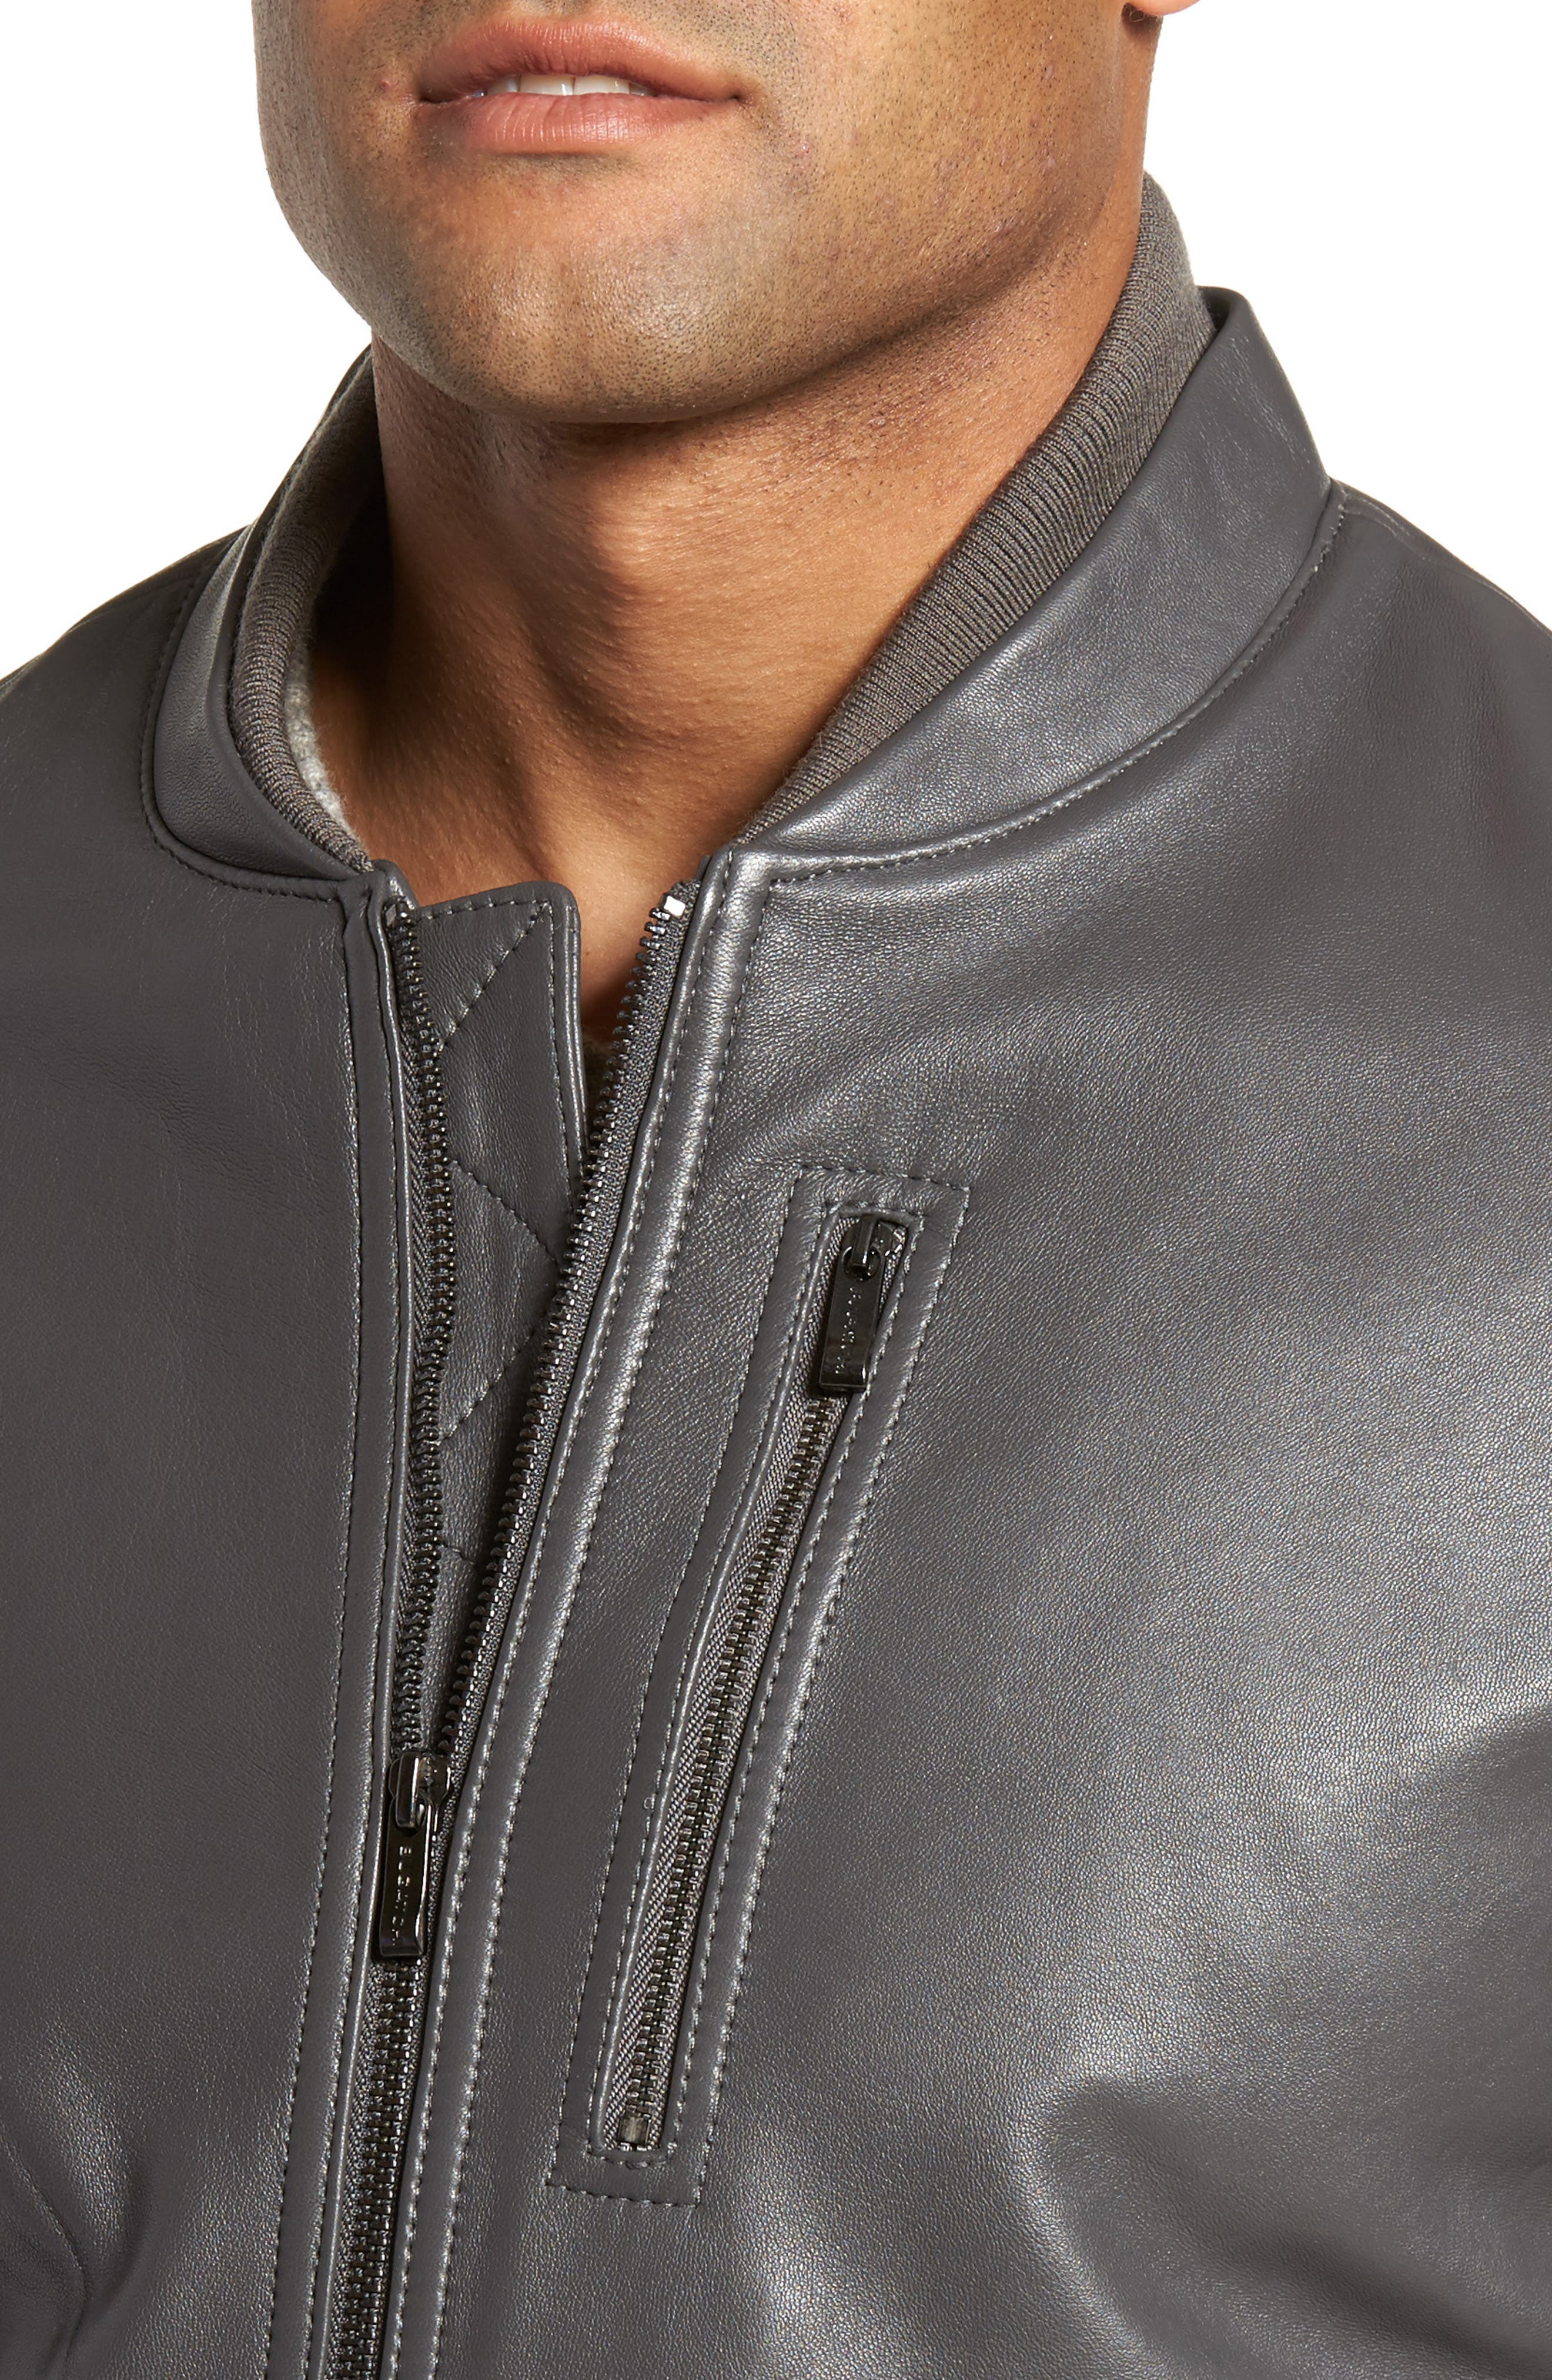 Leather Bomber Jacket,                             Alternate thumbnail 4, color,                             020